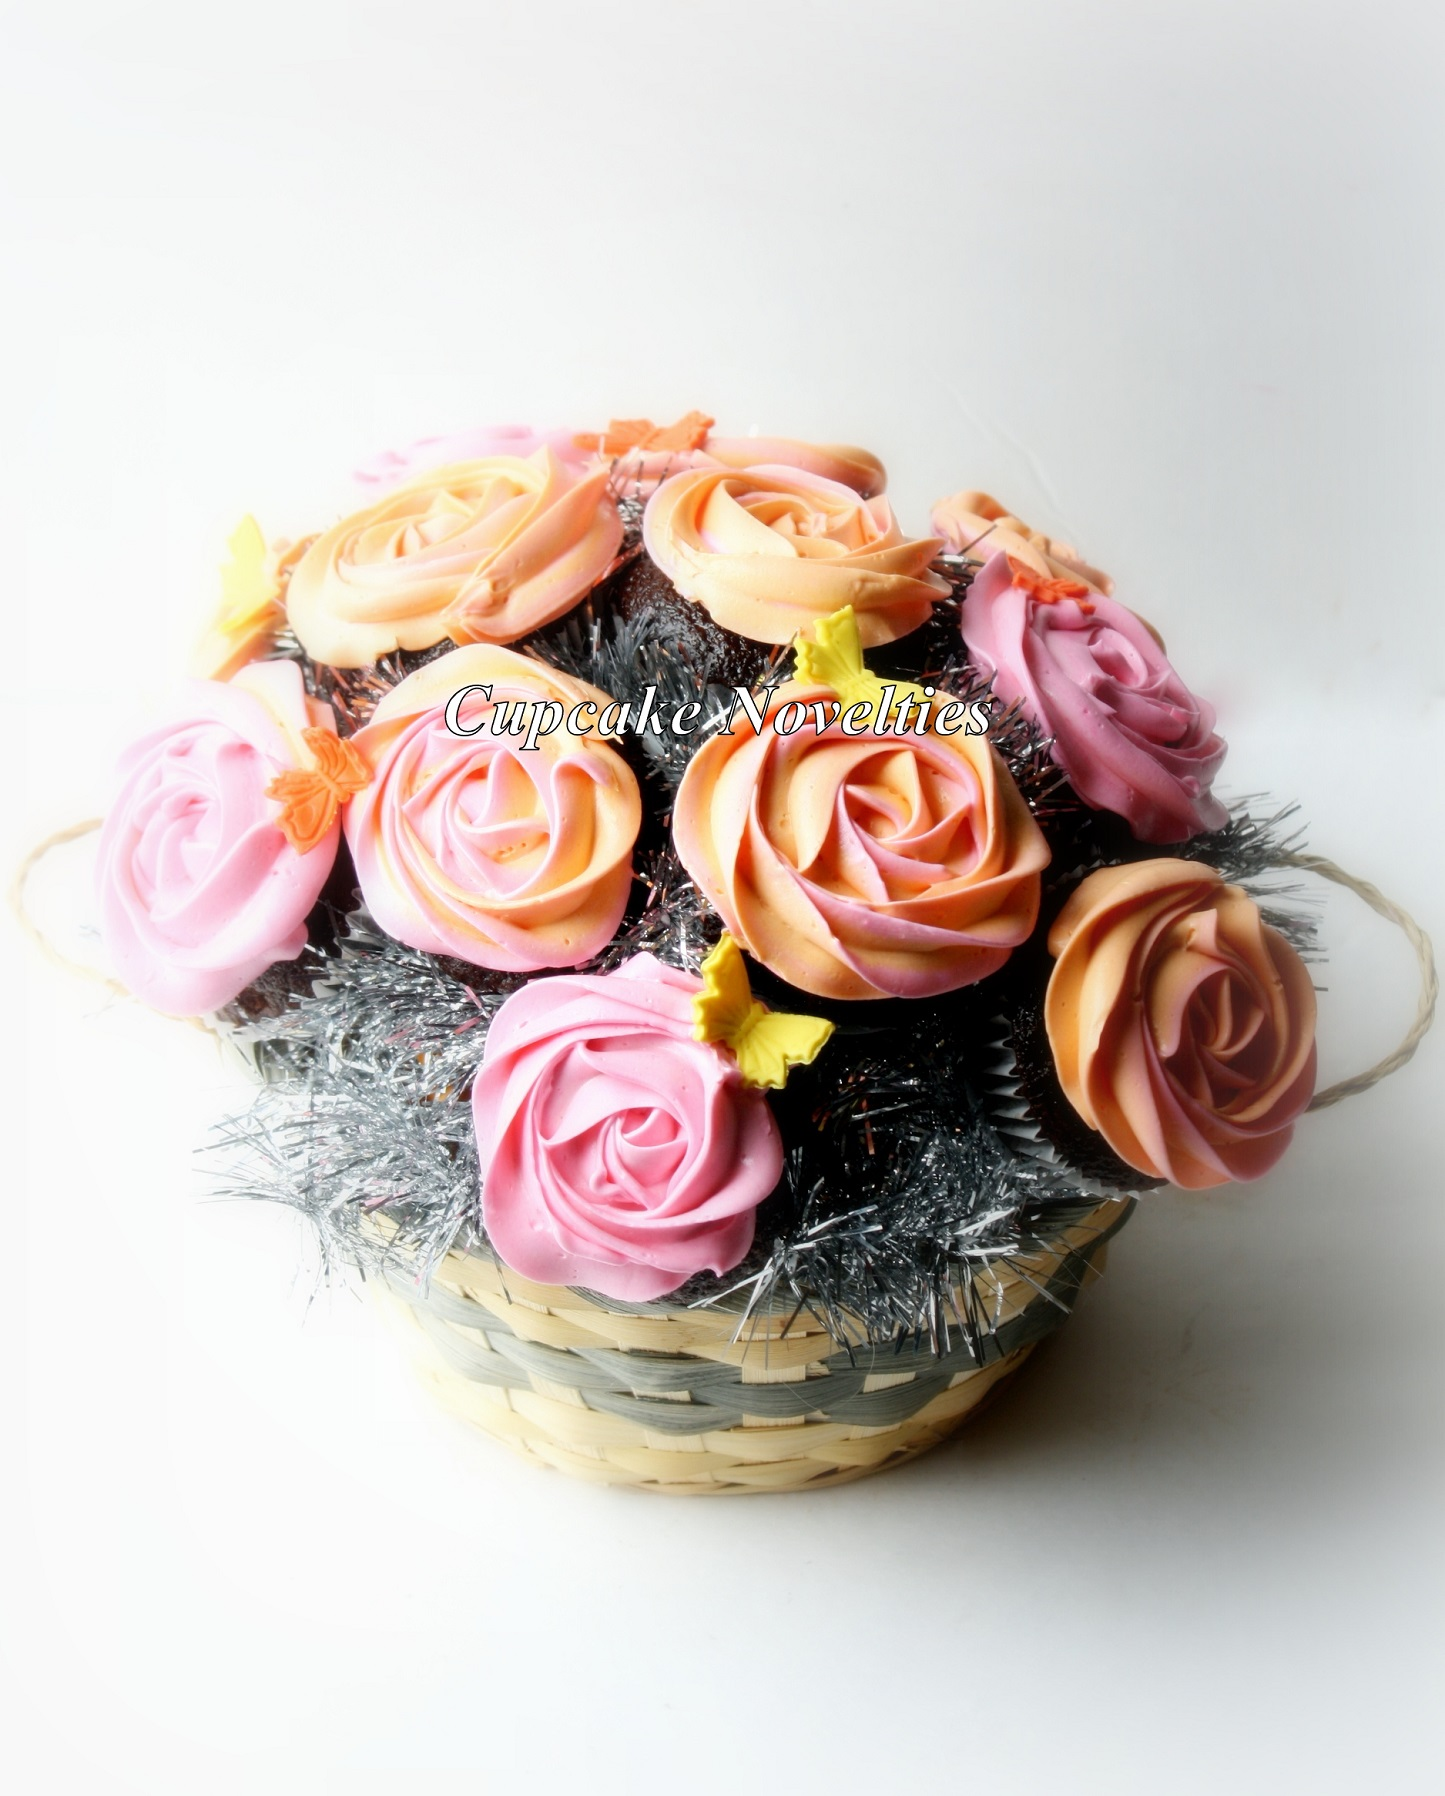 Pink & Orange roses Cupcake Bouquet with handmade edible butterflies